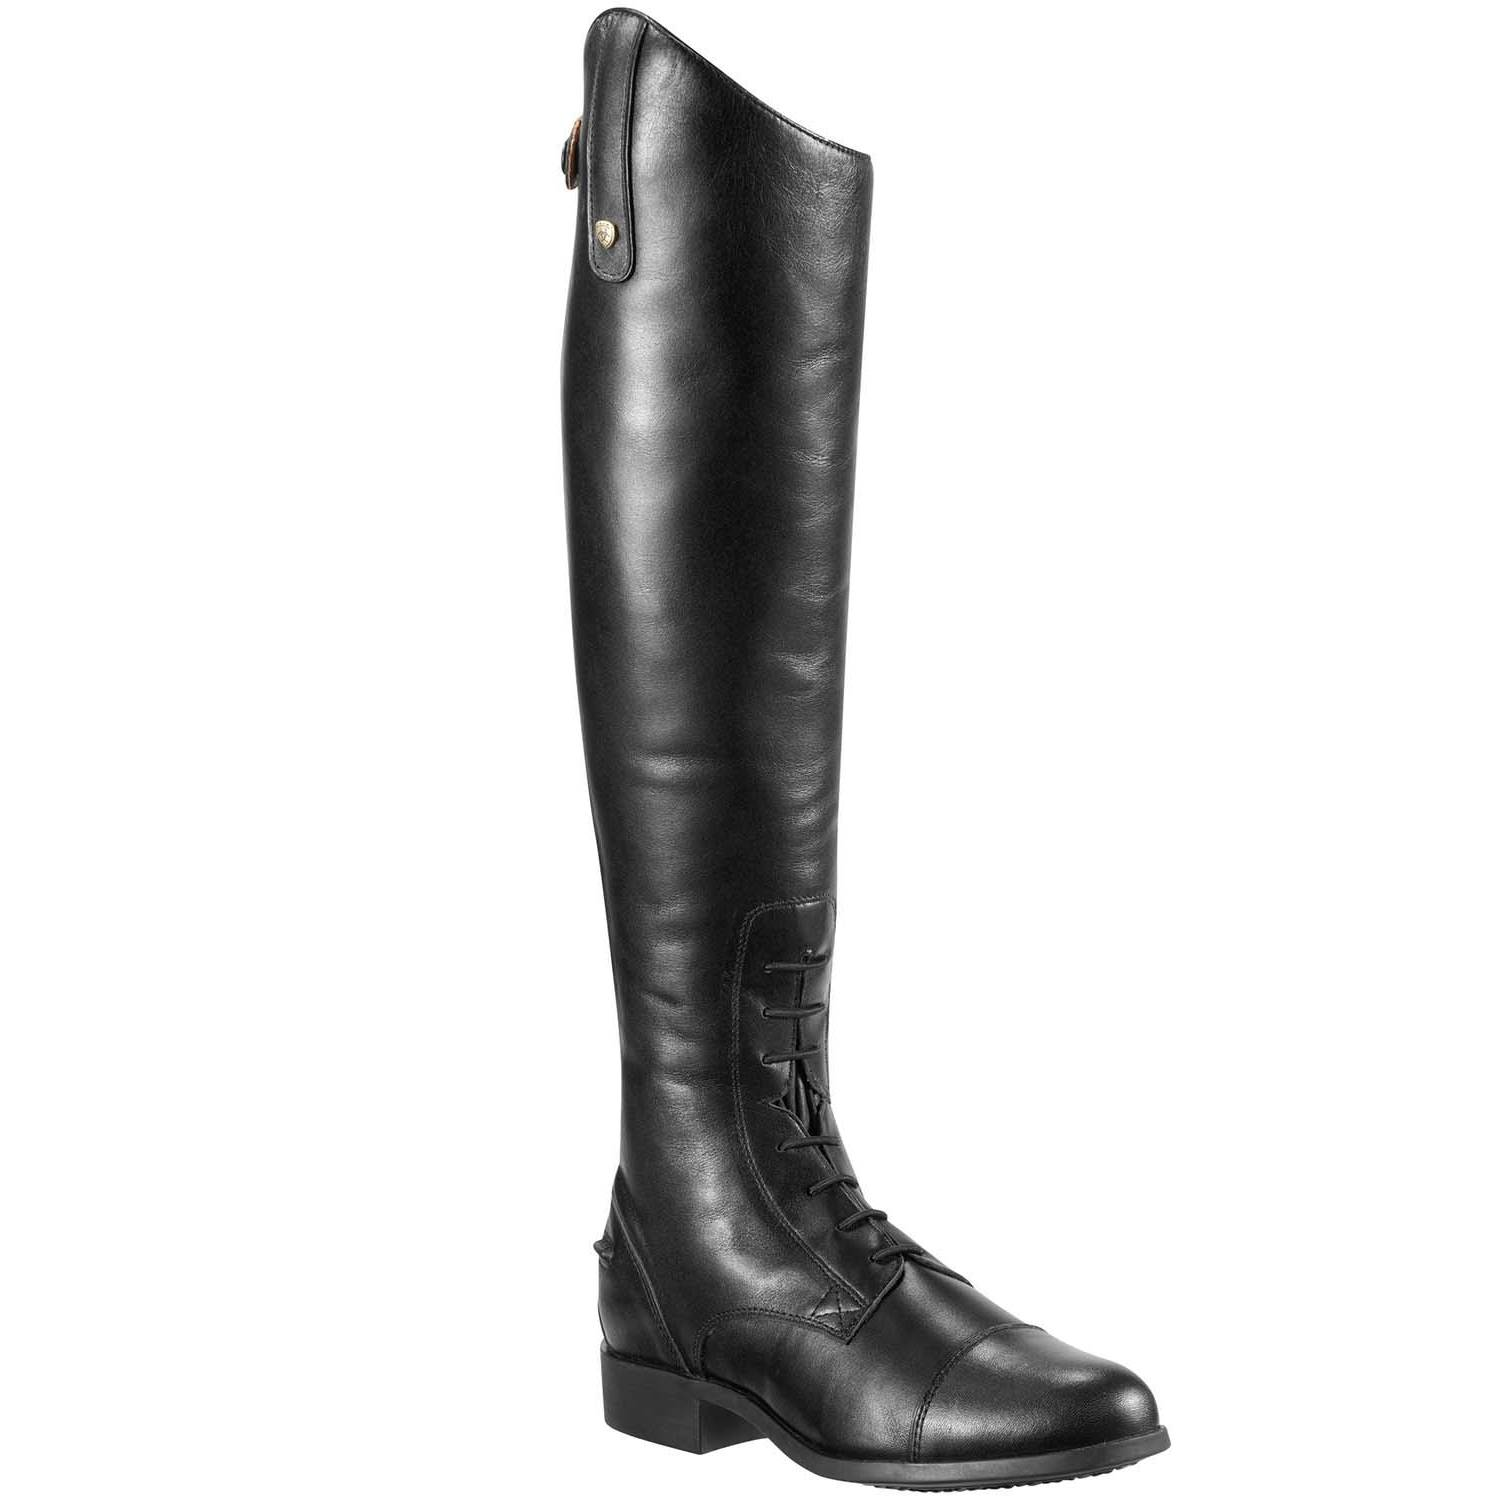 Ariat Heritage Contour Field Boot - Ladies